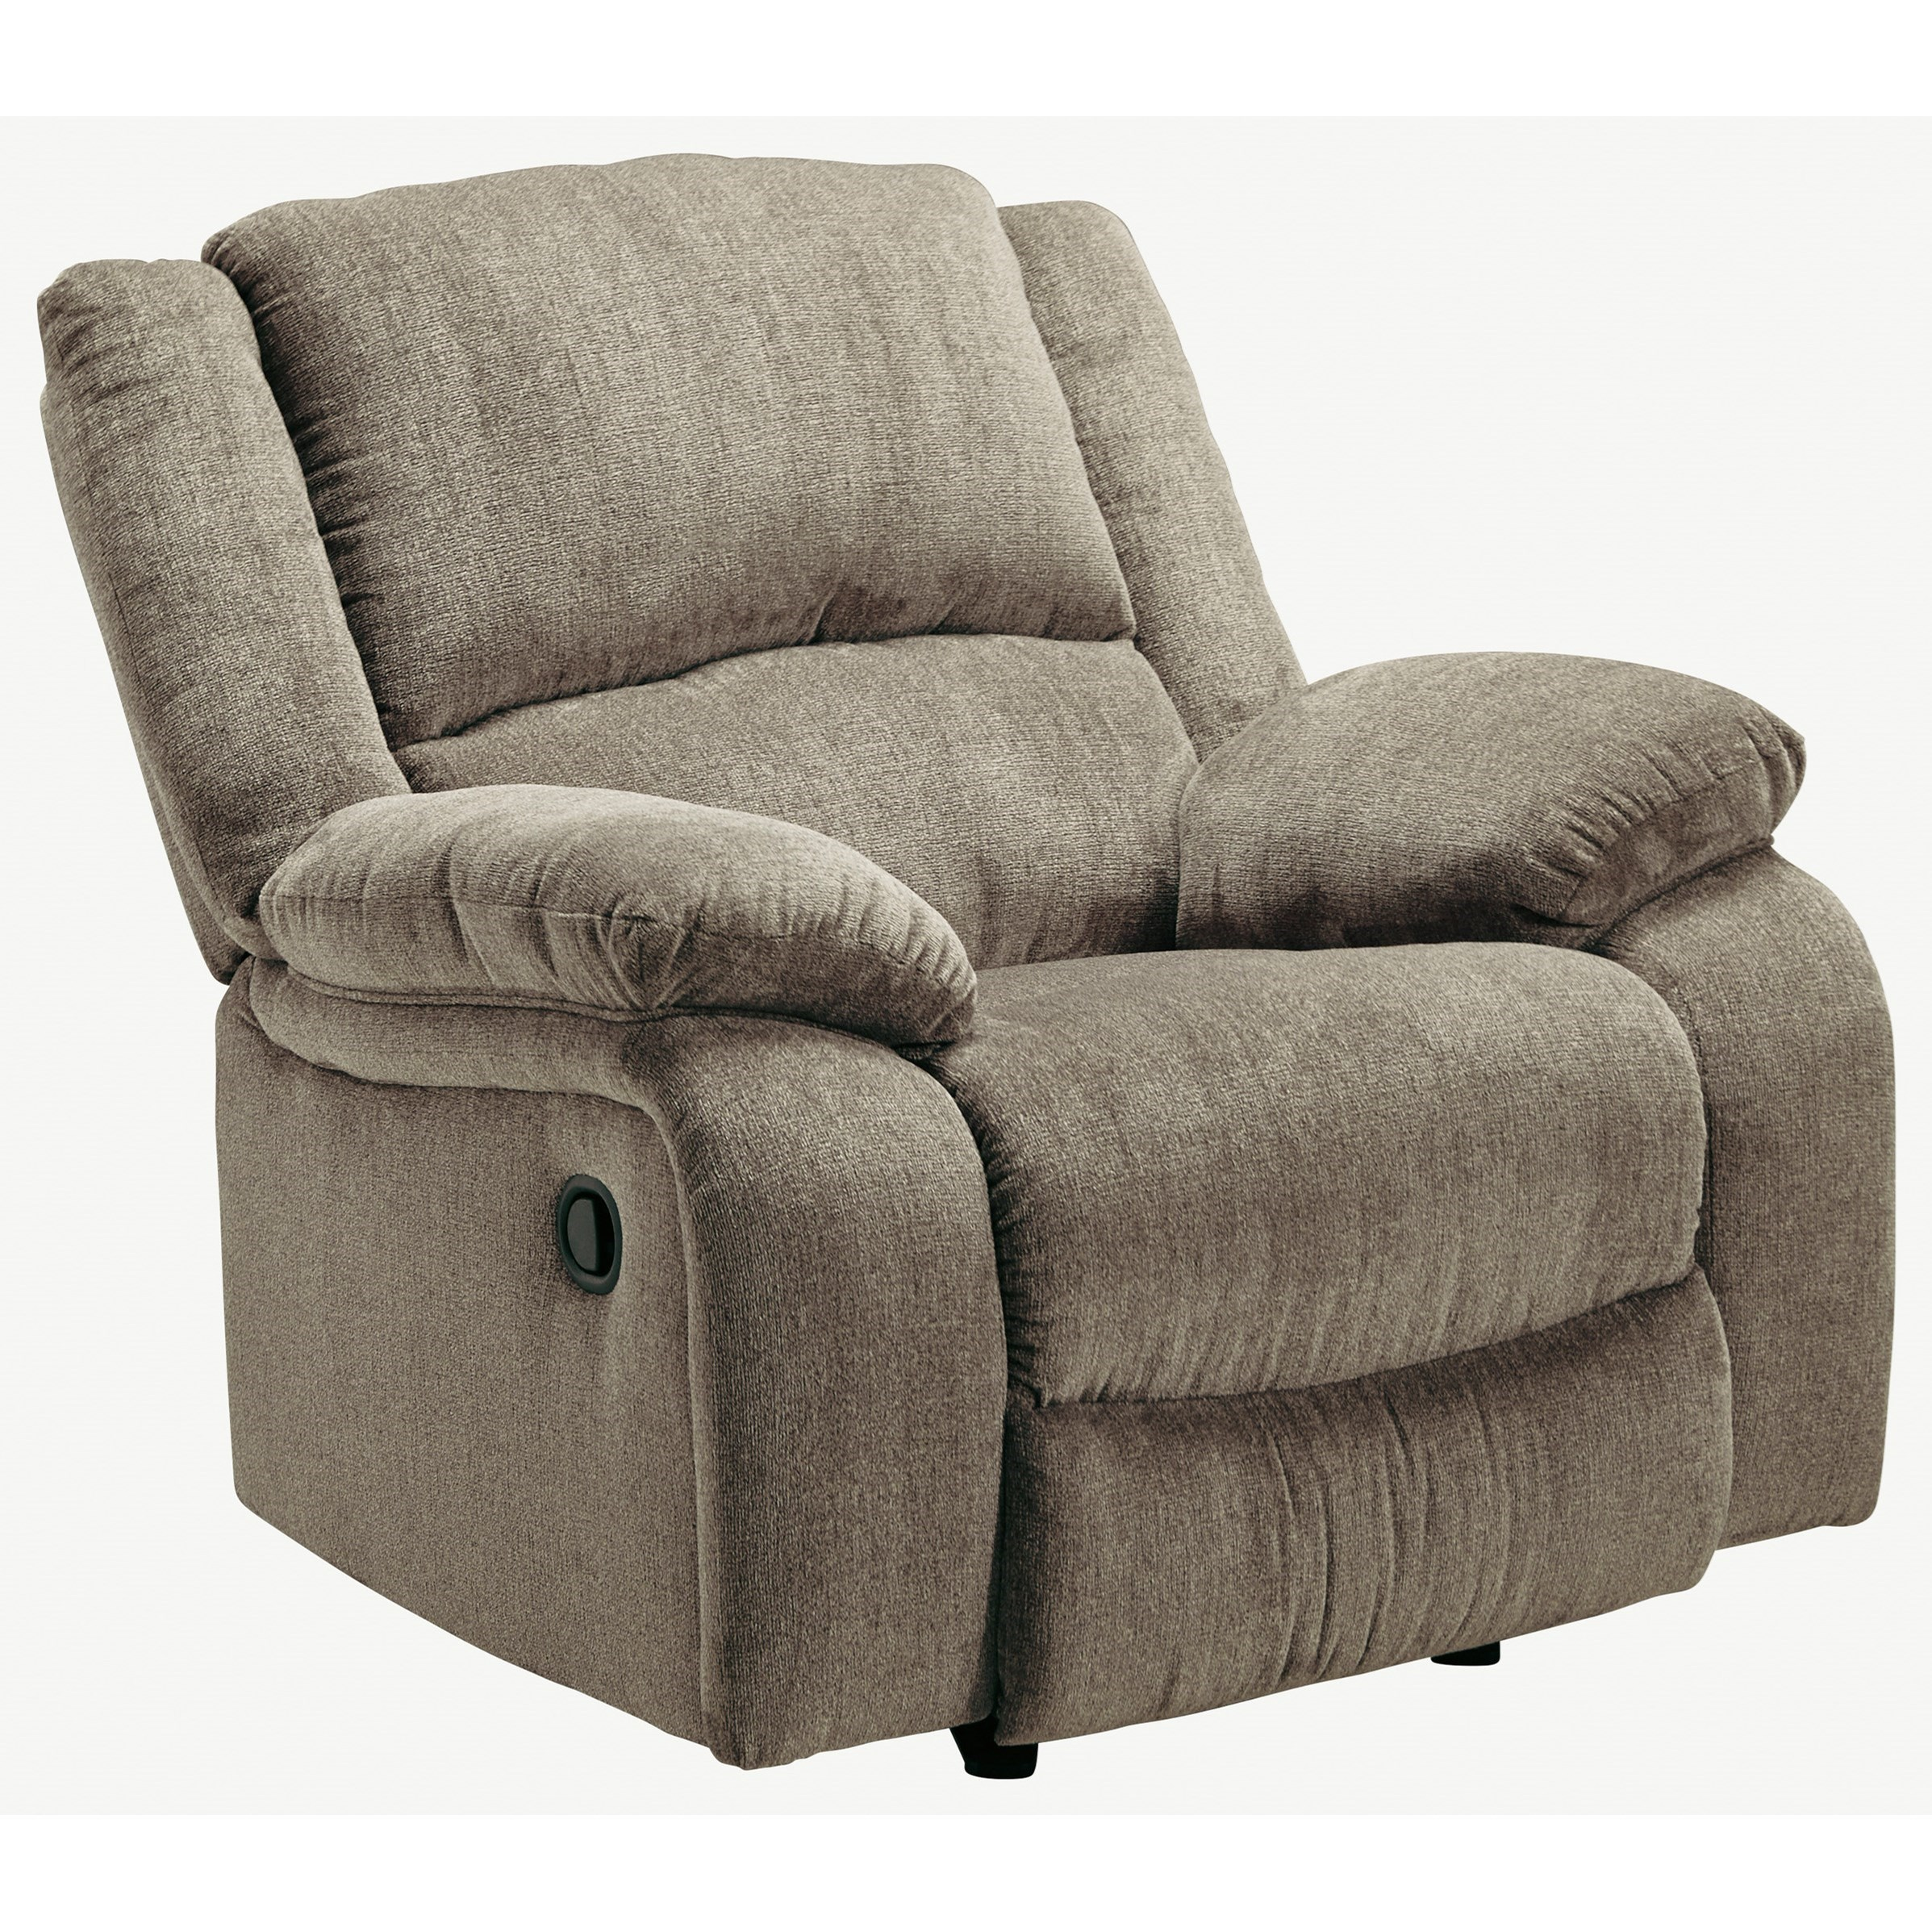 Draycoll Rocker Recliner by Ashley (Signature Design) at Johnny Janosik